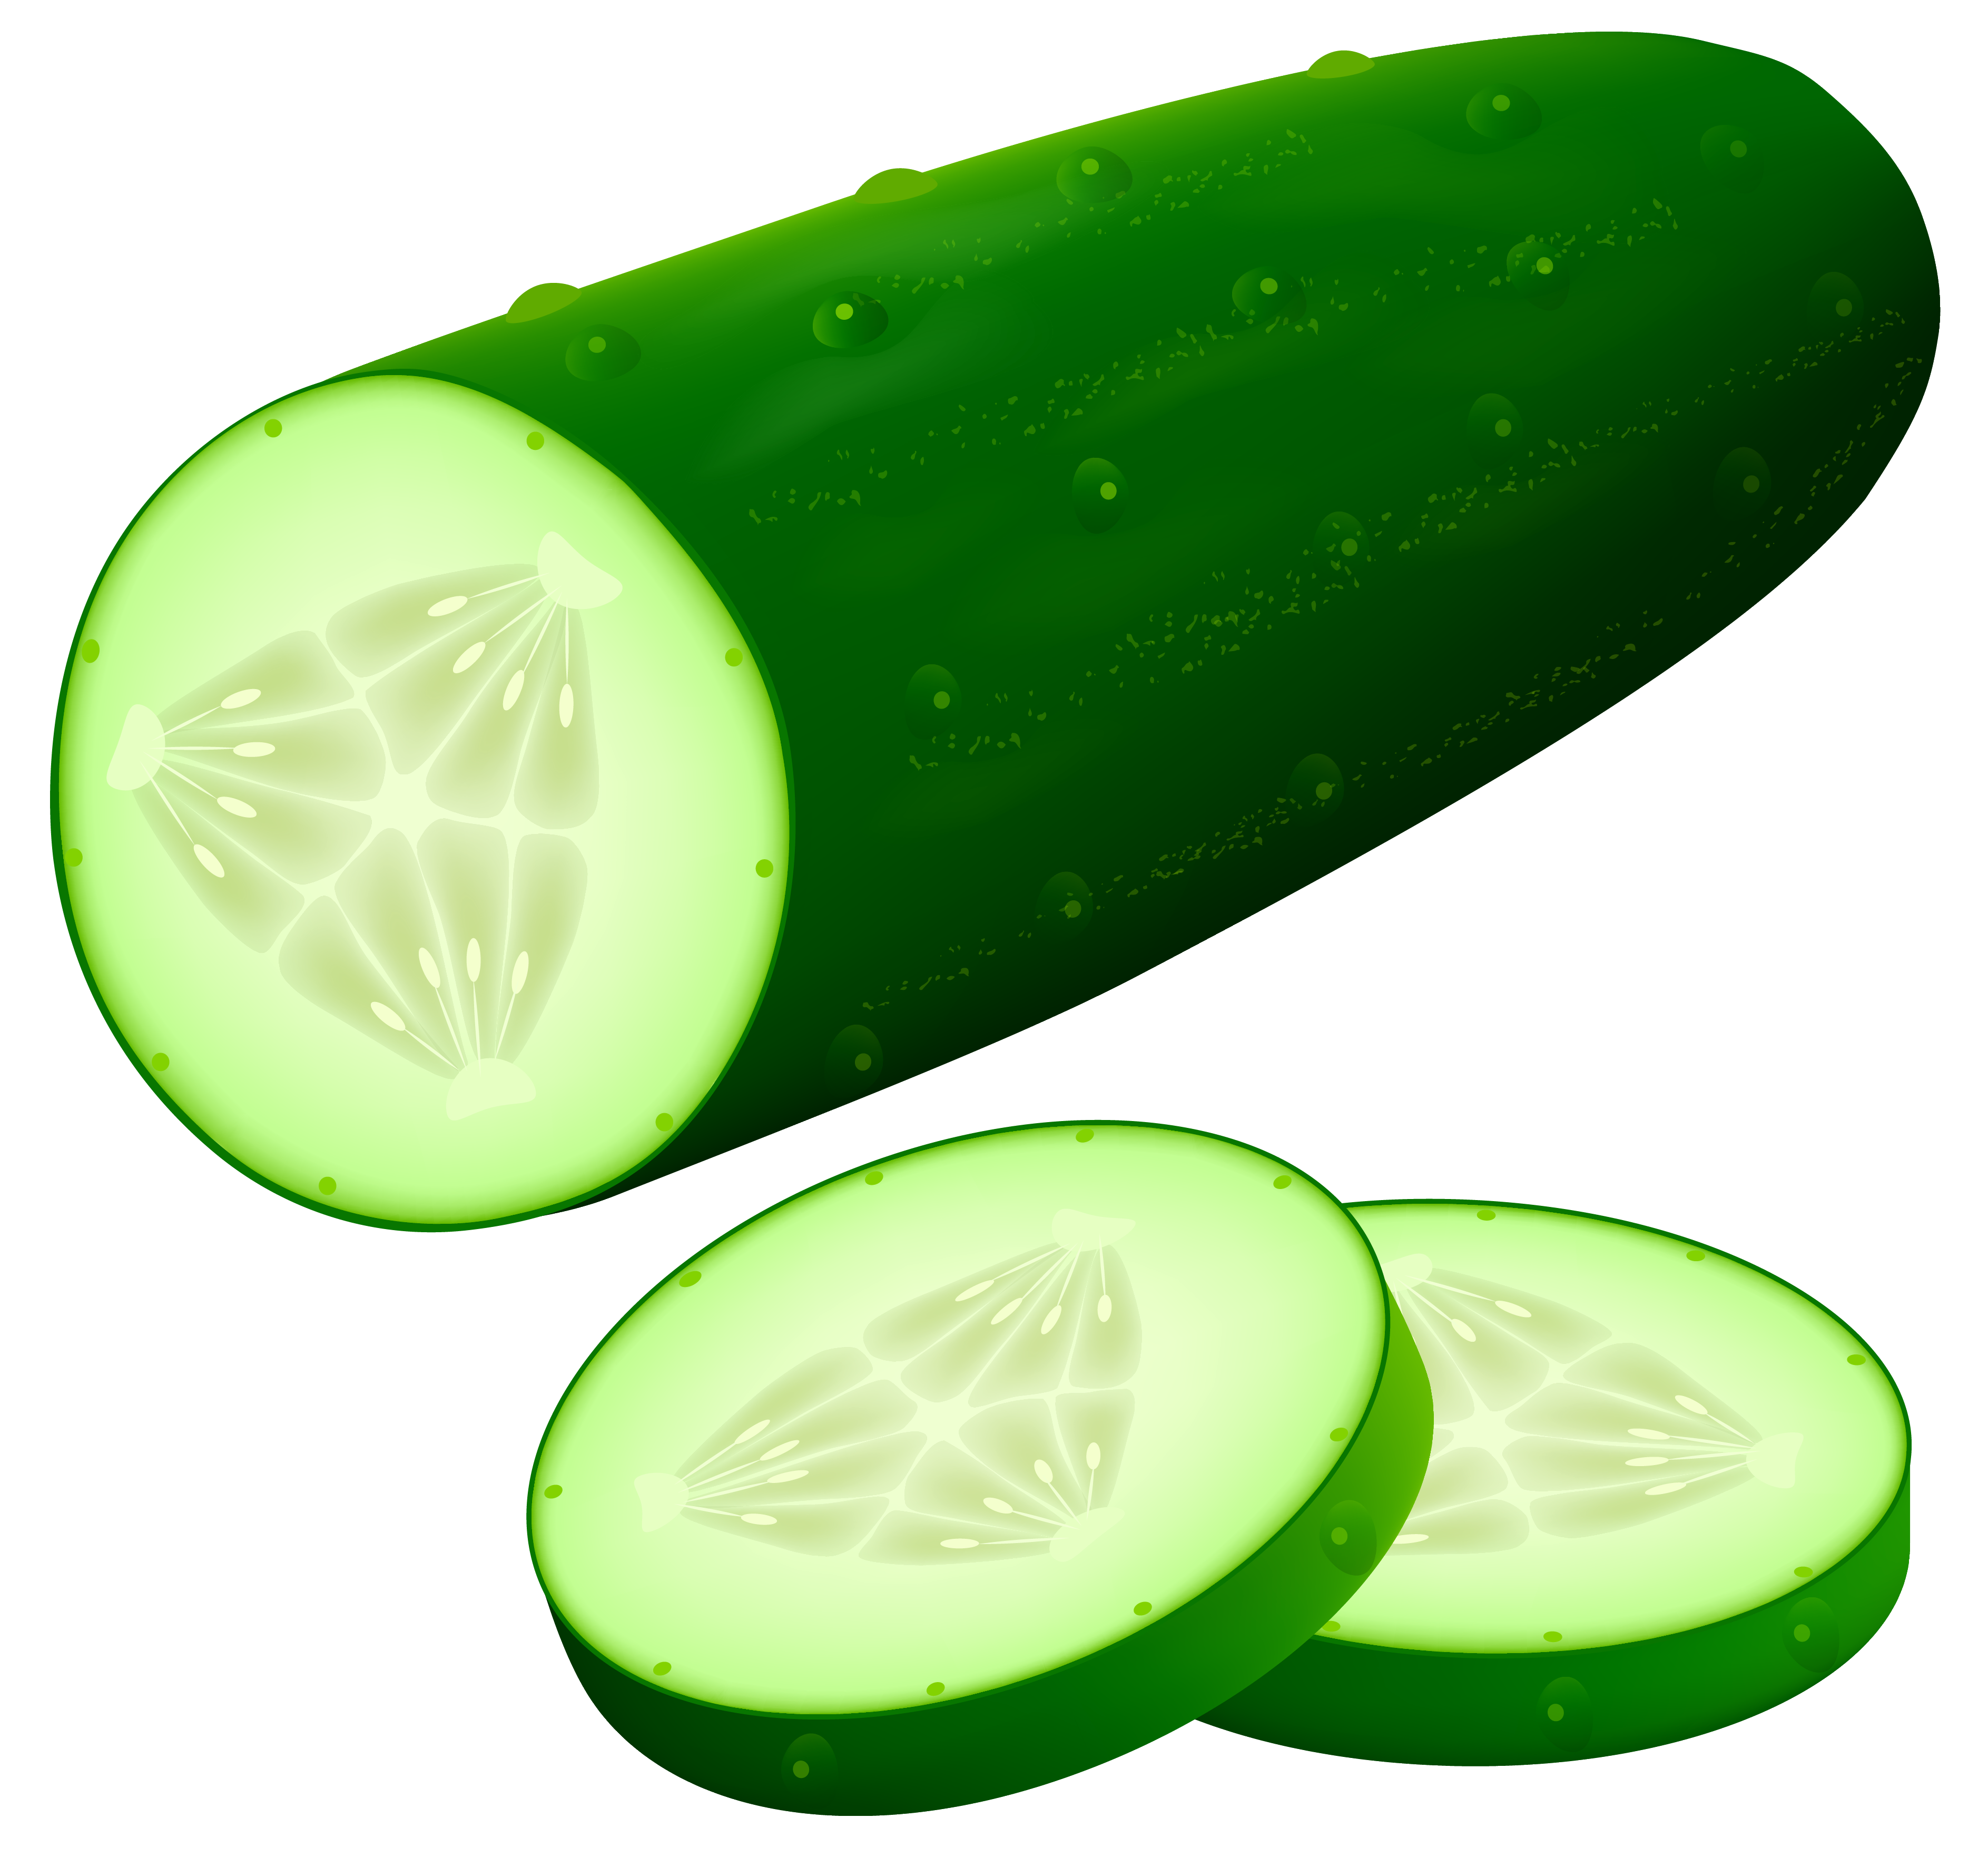 Image Result For Cucumber Clip Art Cucumber Home Remedies For Pimples Clip Art